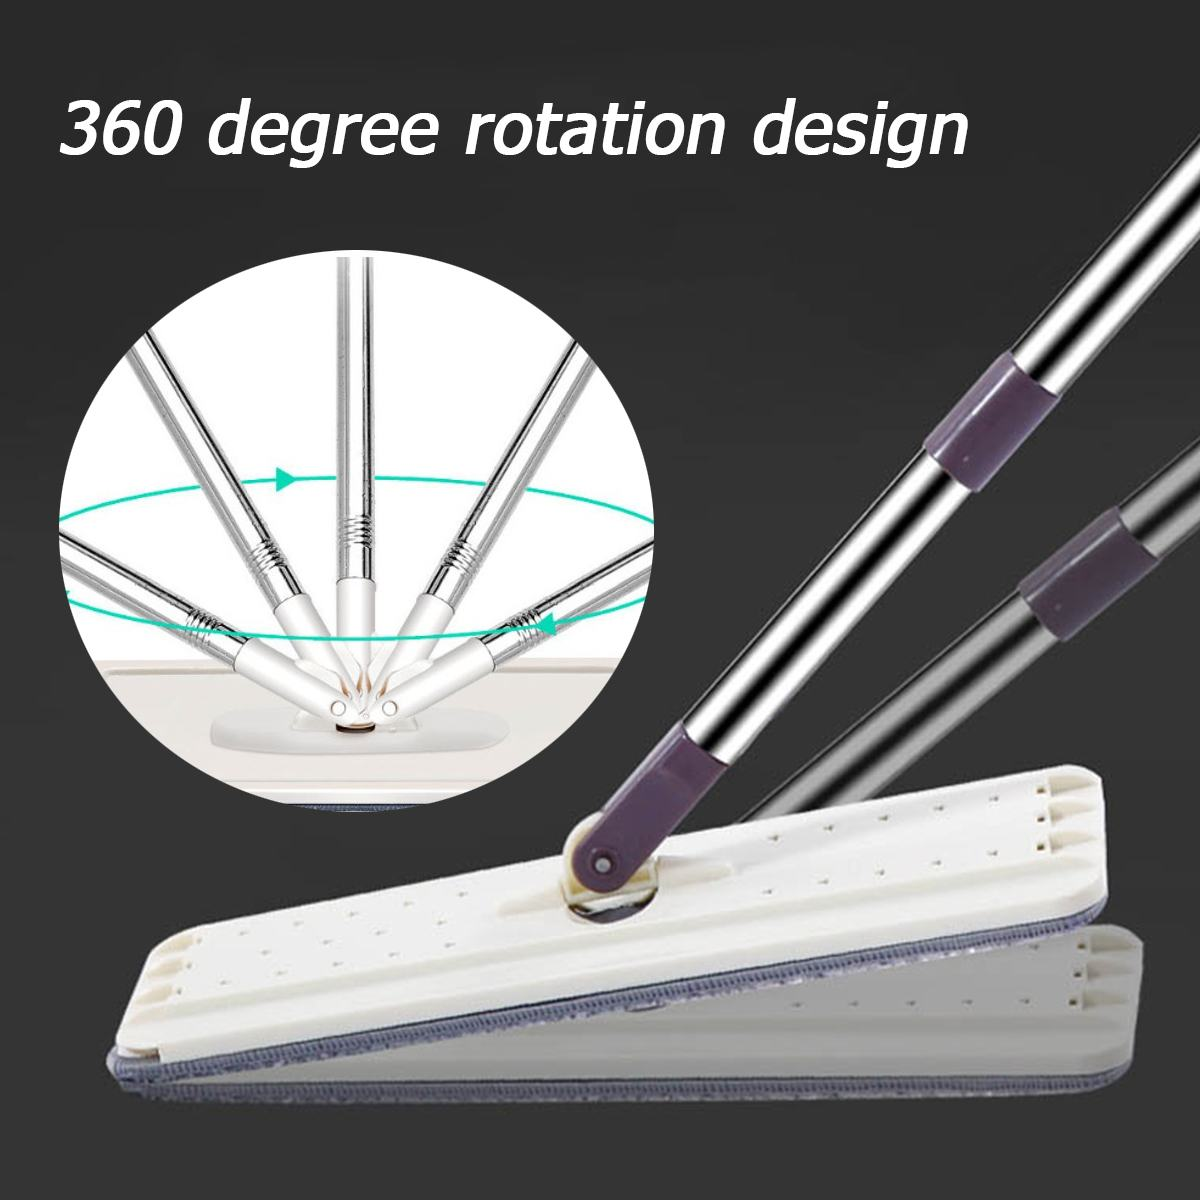 Hand-Free Spin Mop for Automatic Wet or Dry Mopping in 360-Degree Rotation Structure Design 3